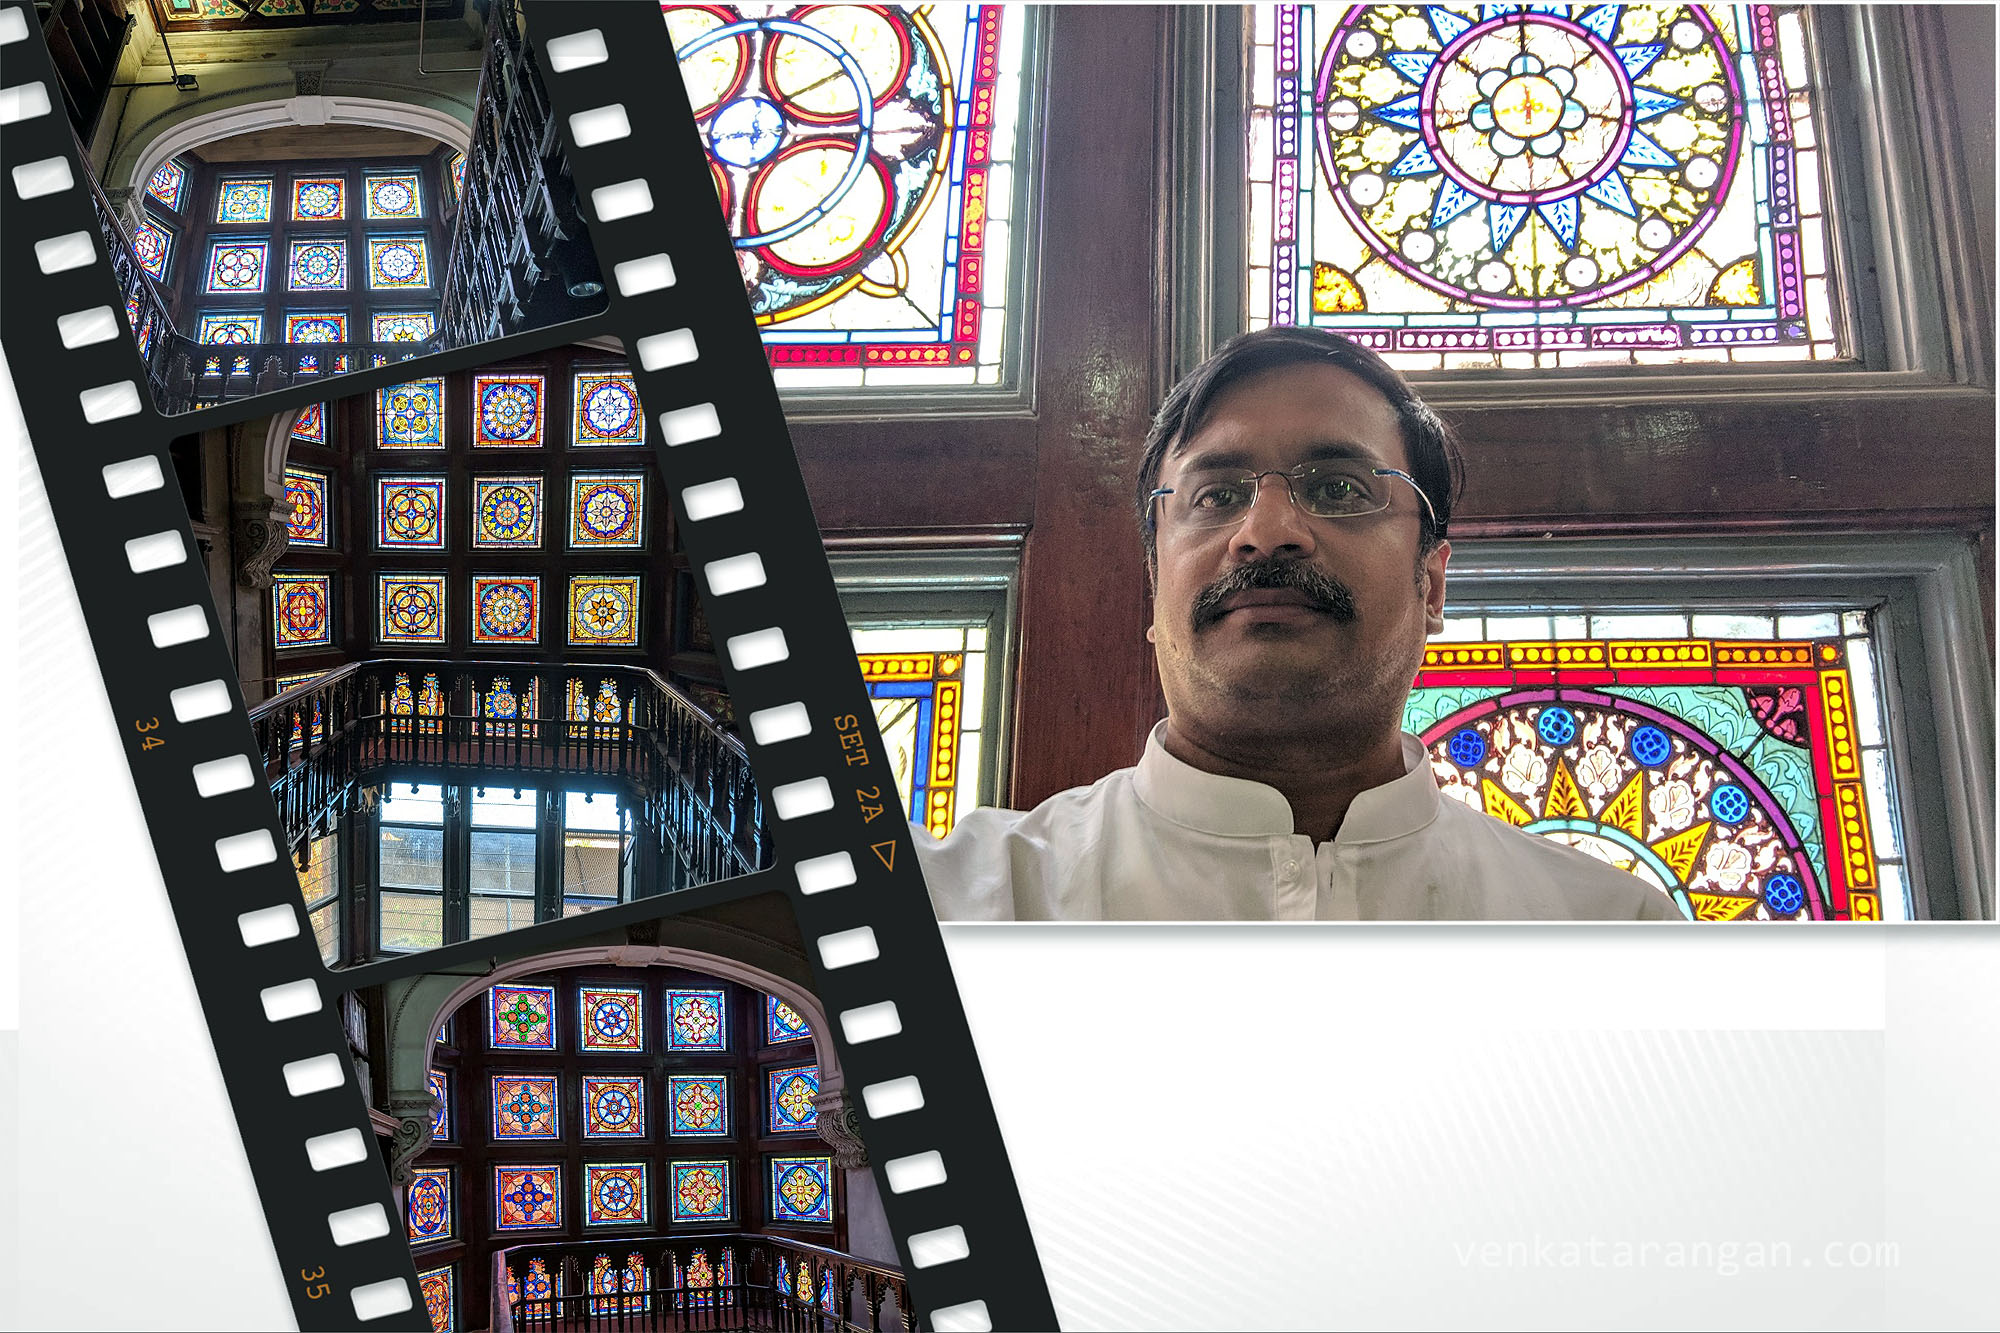 Stained Glasses inside Connemara Public Library, Egmore, Chennai! I feel mesmerised by just looking at them!